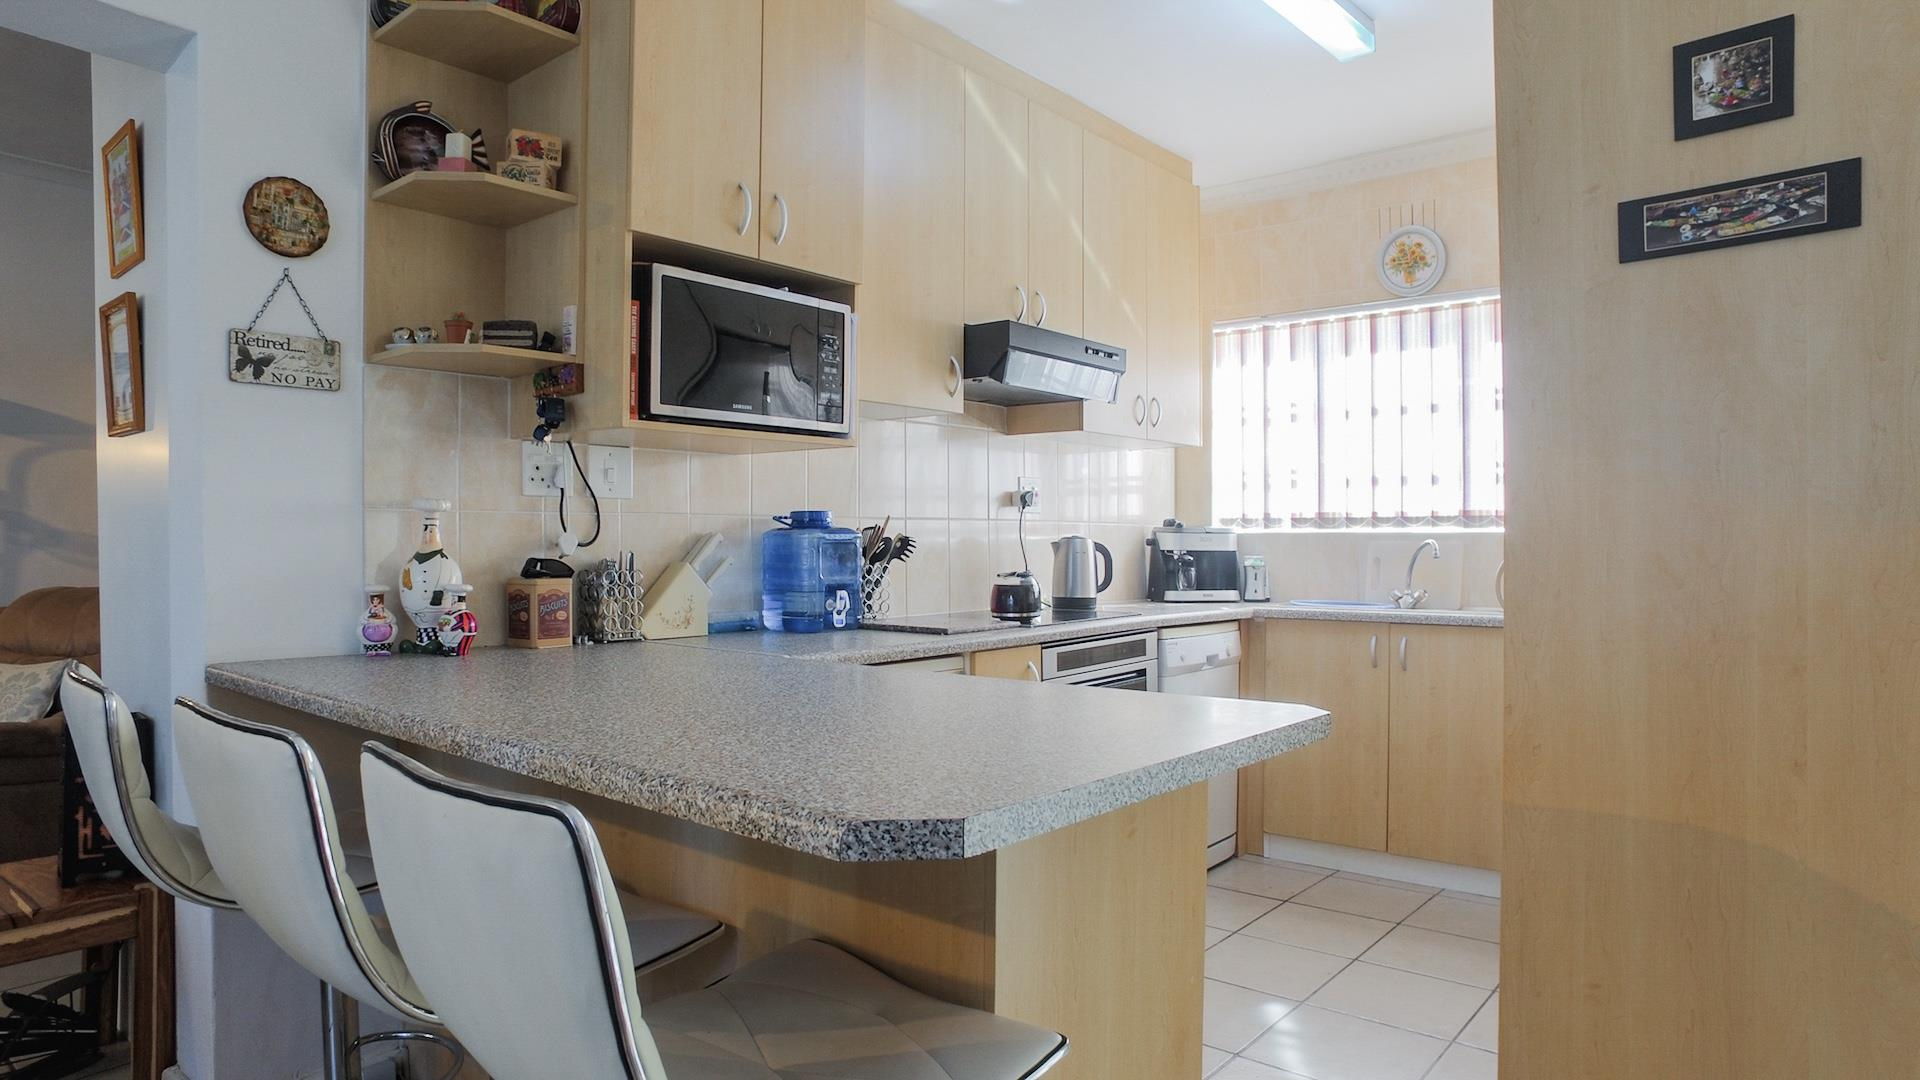 2 Bedroom Duplex For Sale in Hout Bay Central